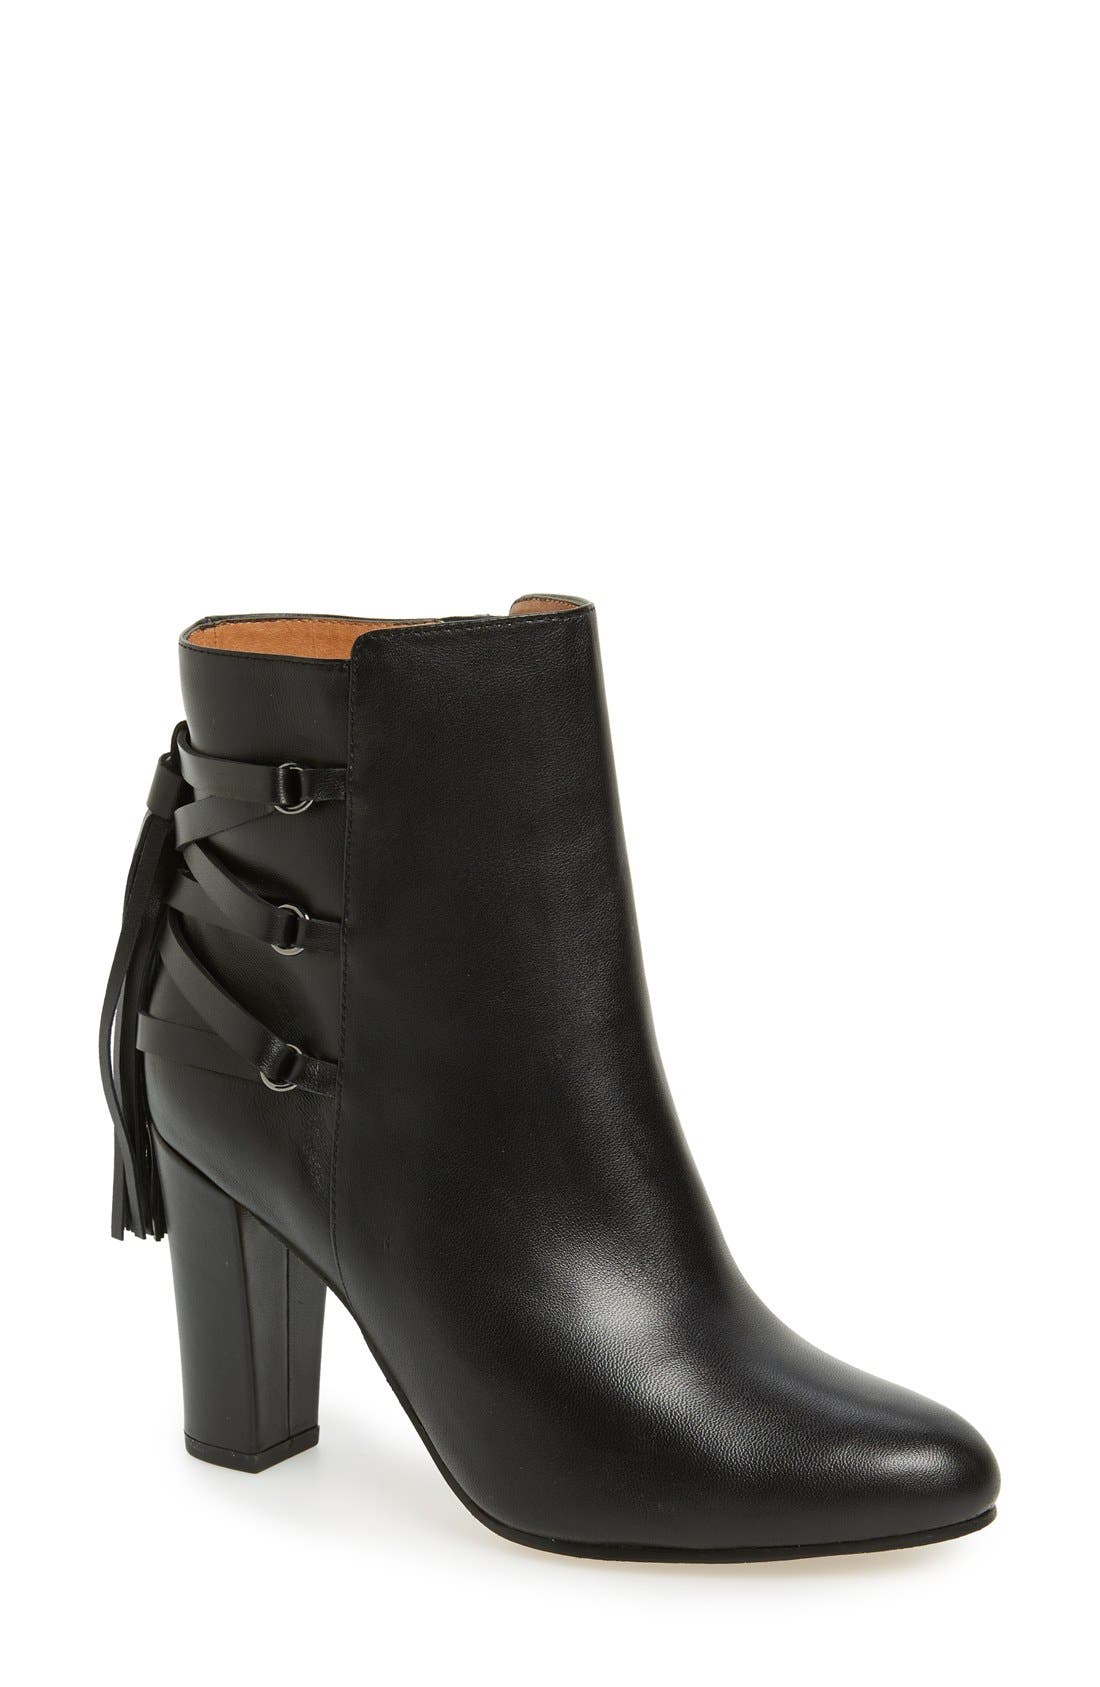 Alternate Image 1 Selected - Halogen® 'Sadee' Lace-Up Almond Toe Bootie (Women)